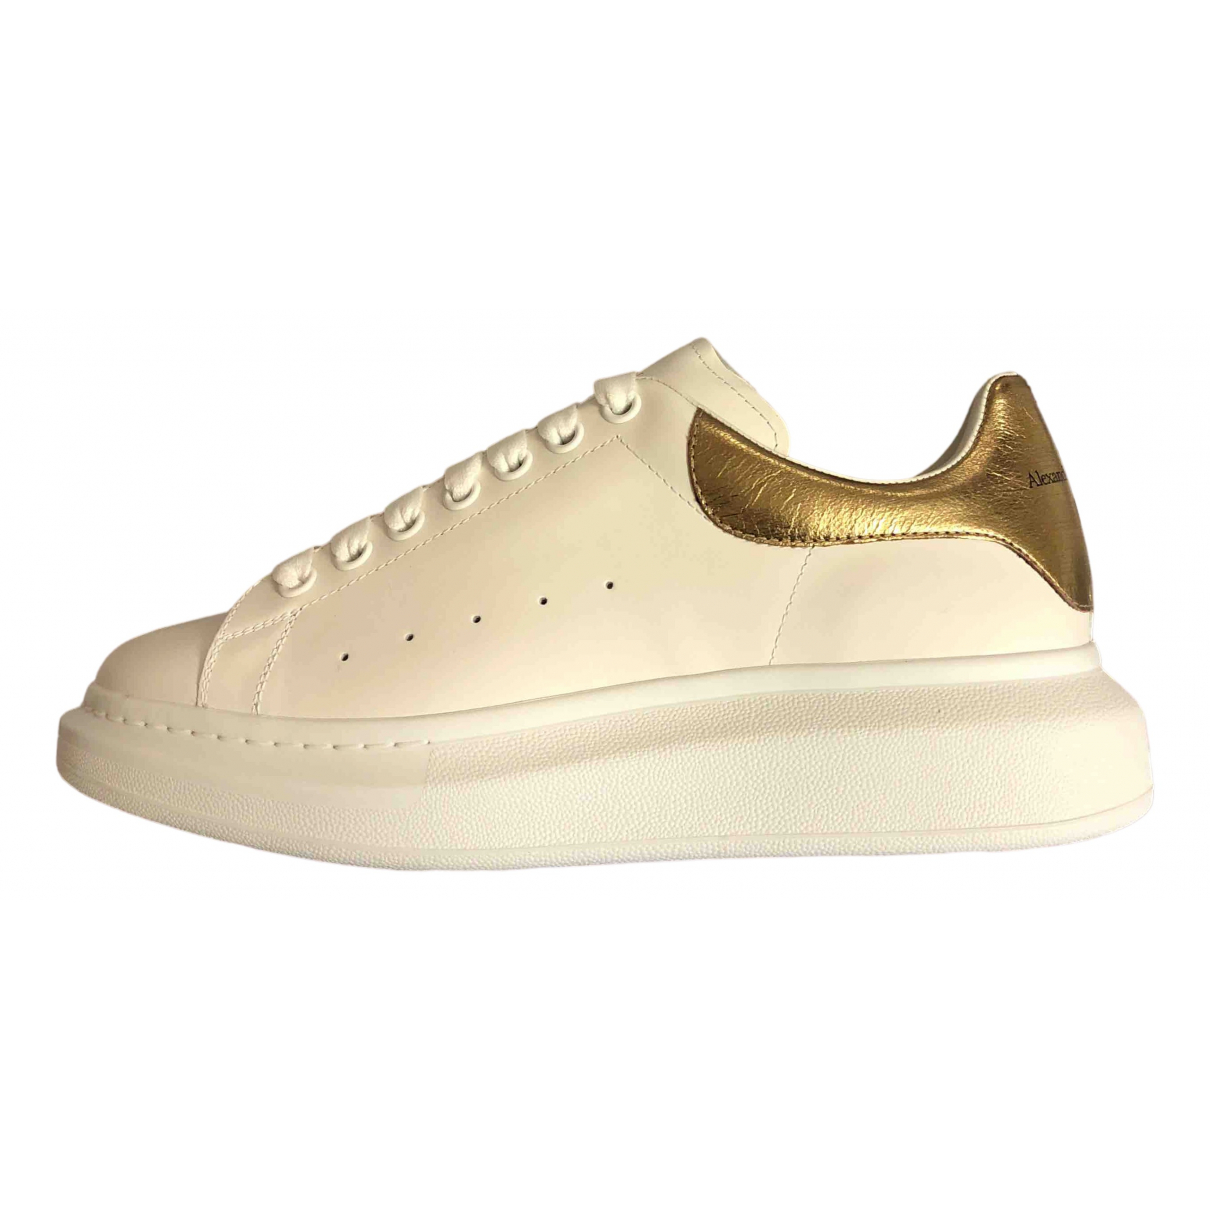 Alexander Mcqueen Oversize White Leather Trainers for Men 42.5 EU